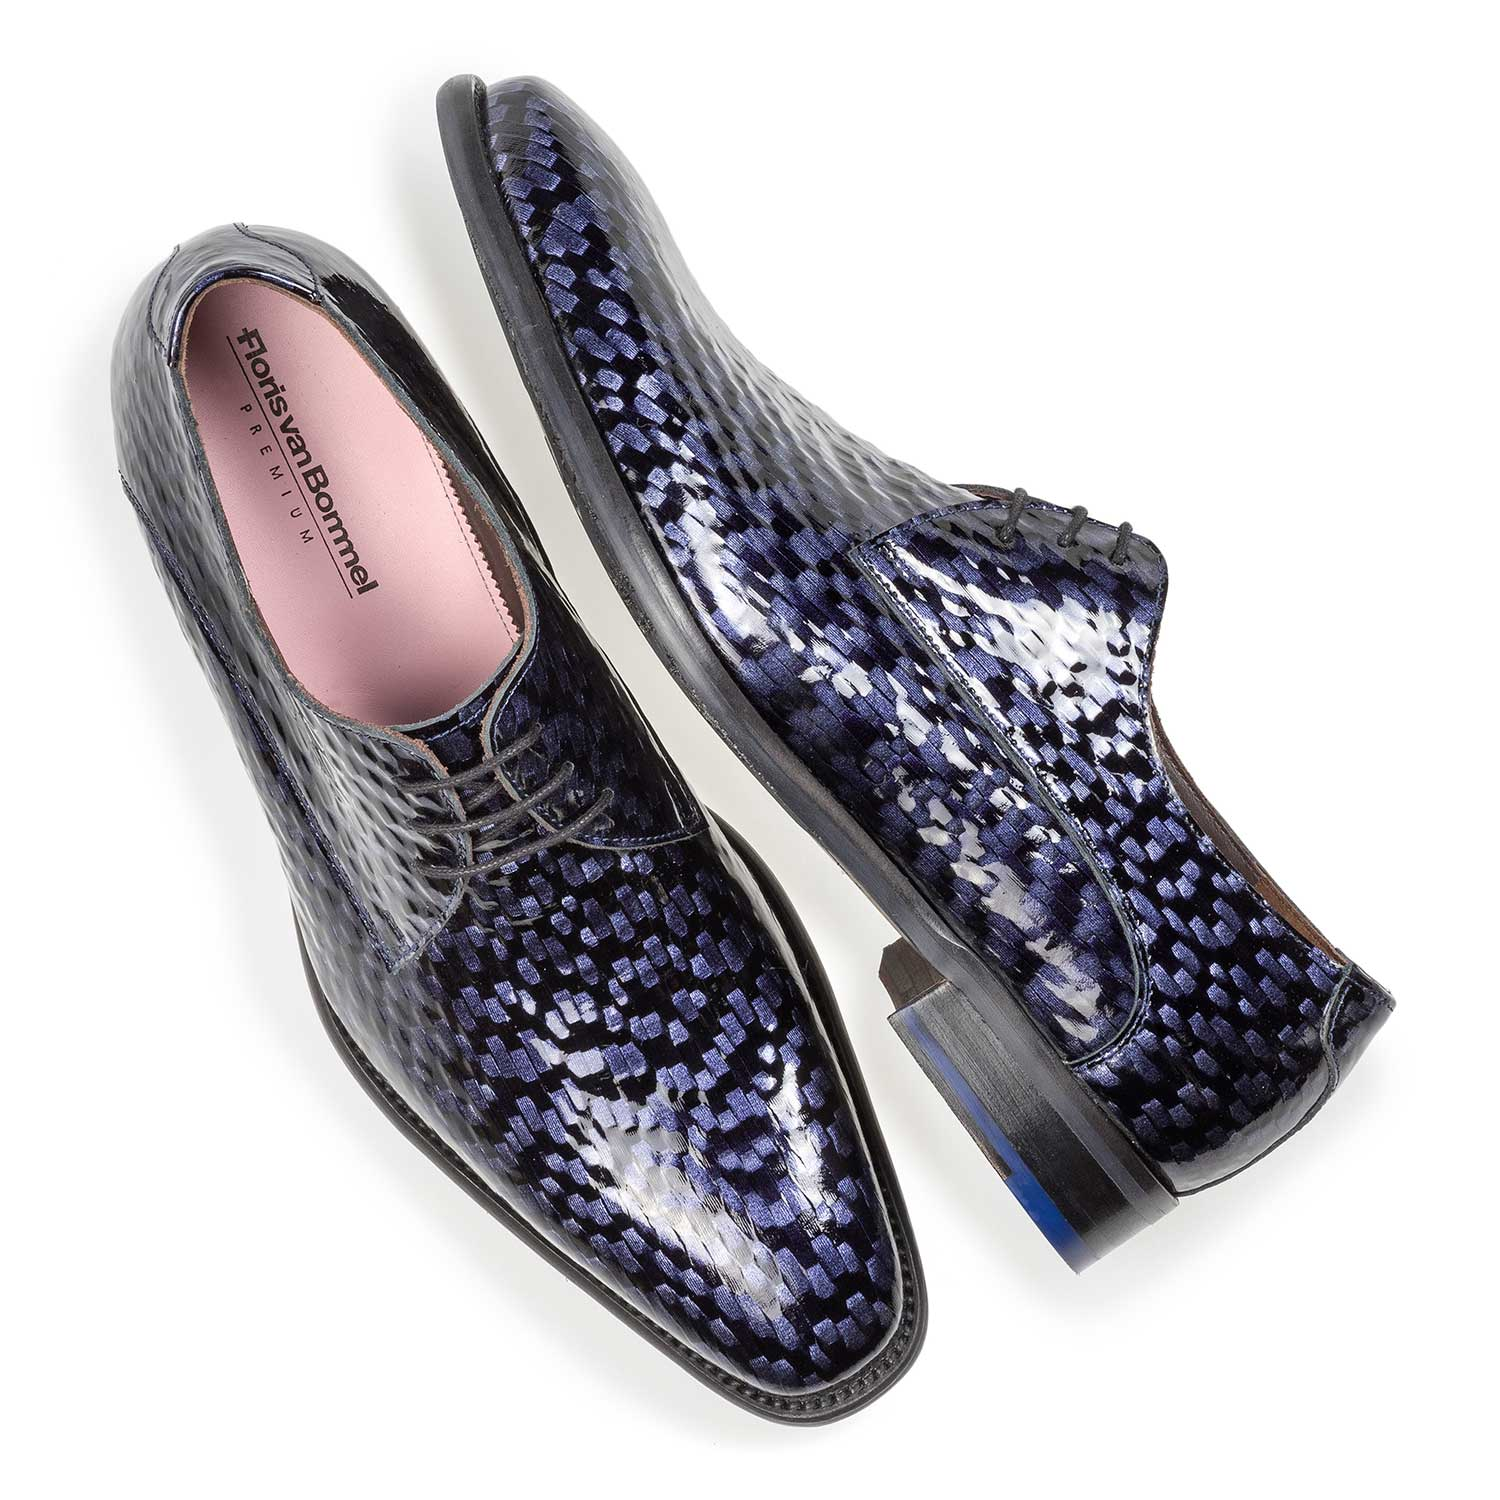 18123/02 - Premium blue printed patent leather lace shoe